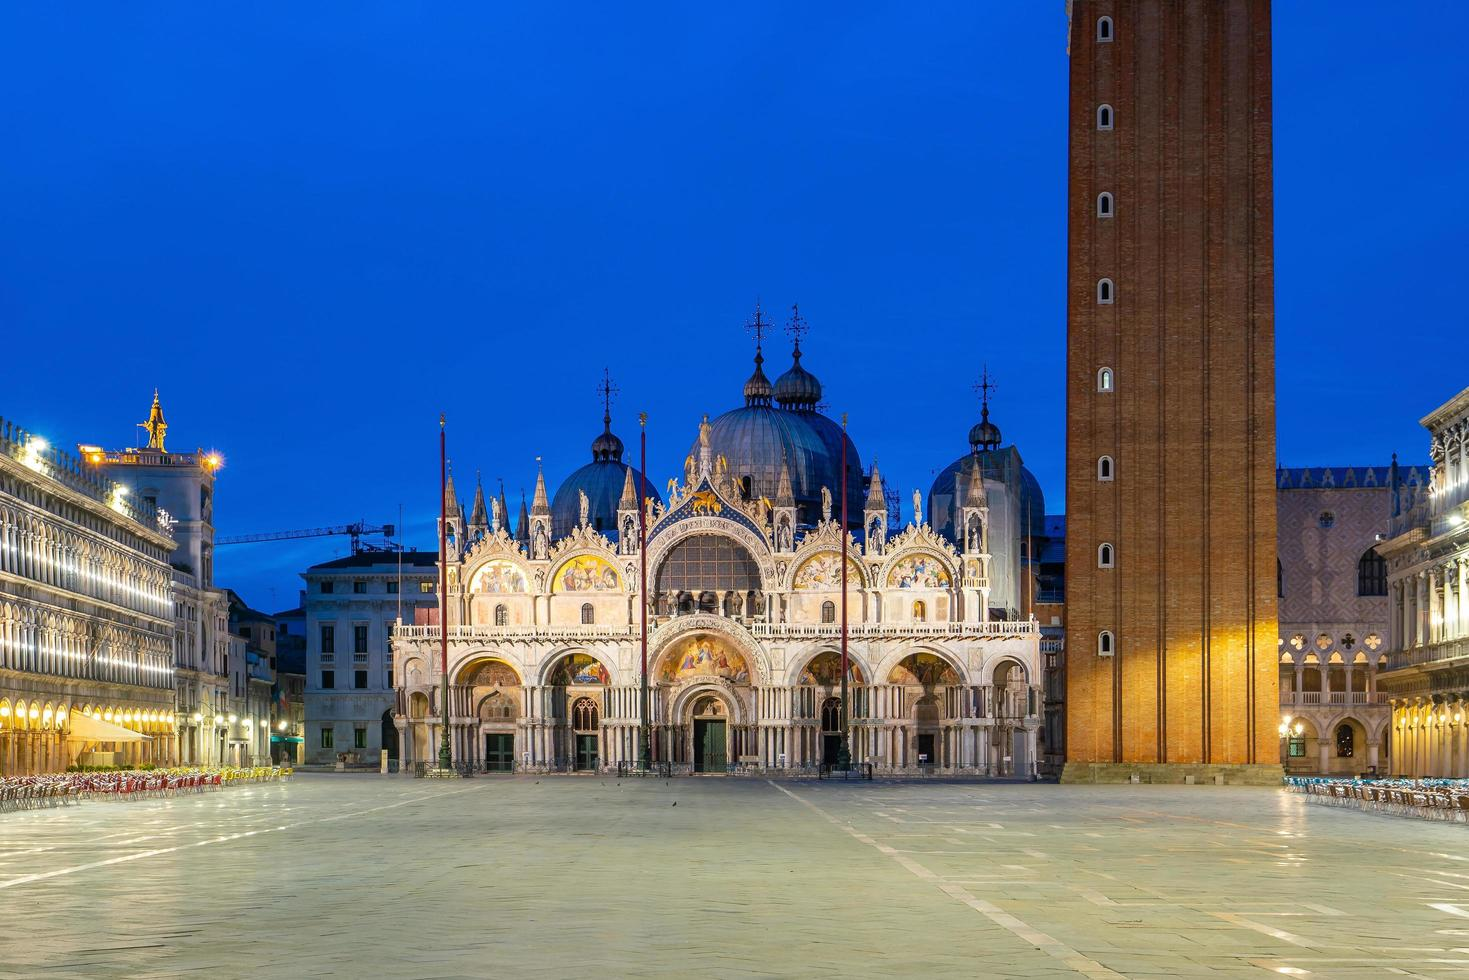 St. Mark's square in Venice during sunrise photo